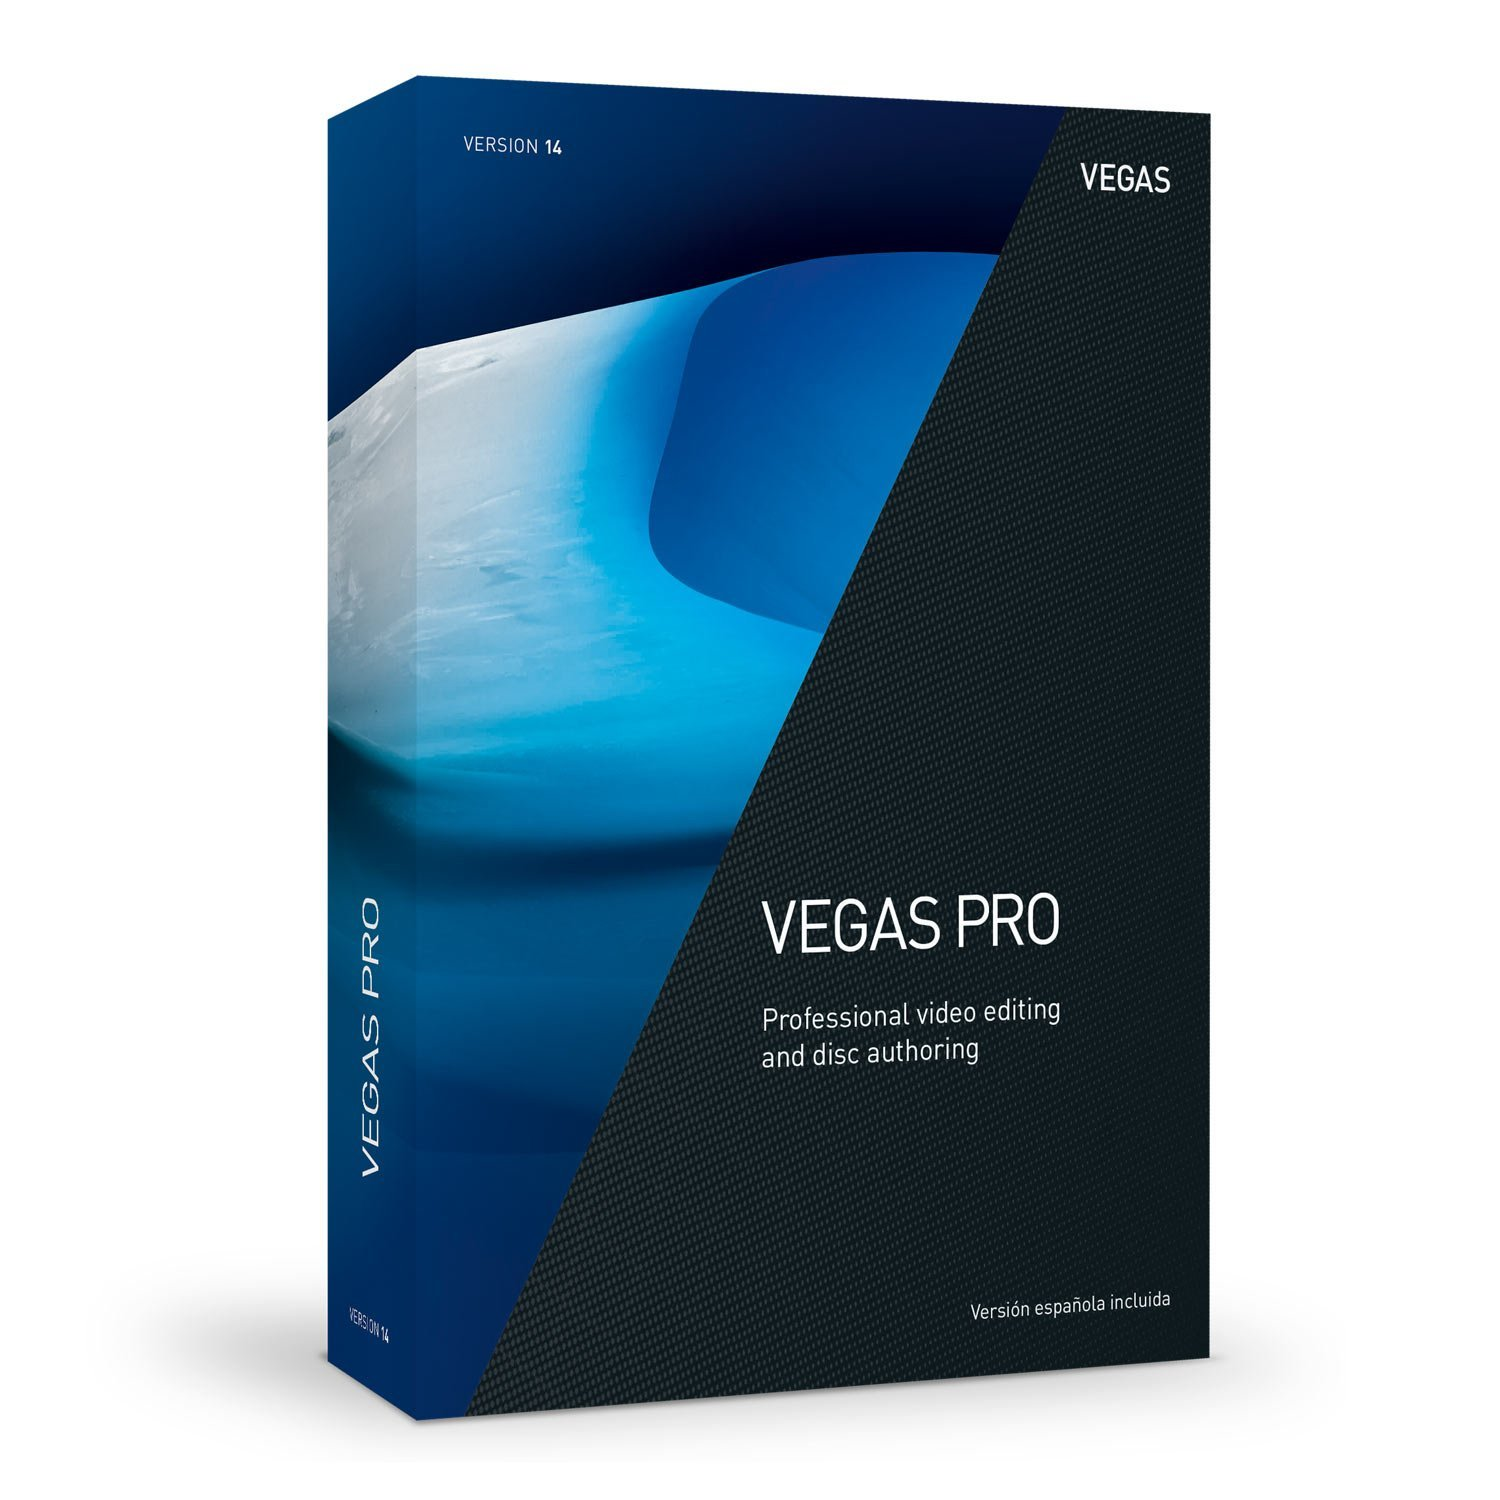 Magix VEGAS Pro 14 for Windows